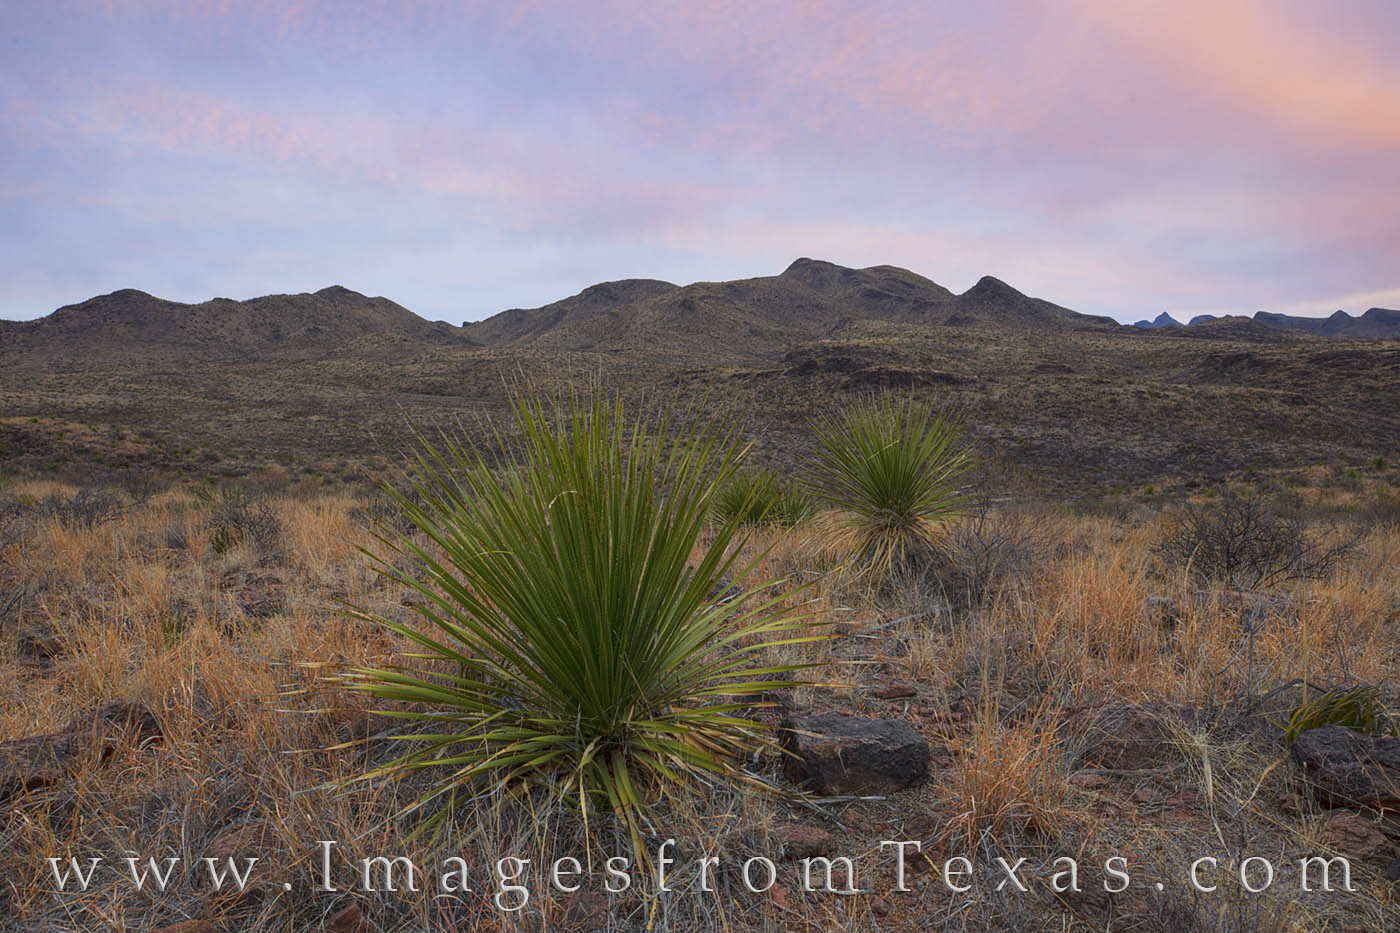 Osa Loop, big bend ranch, 4WD, west texas, sunset, texas state parks, texas landscape, photo